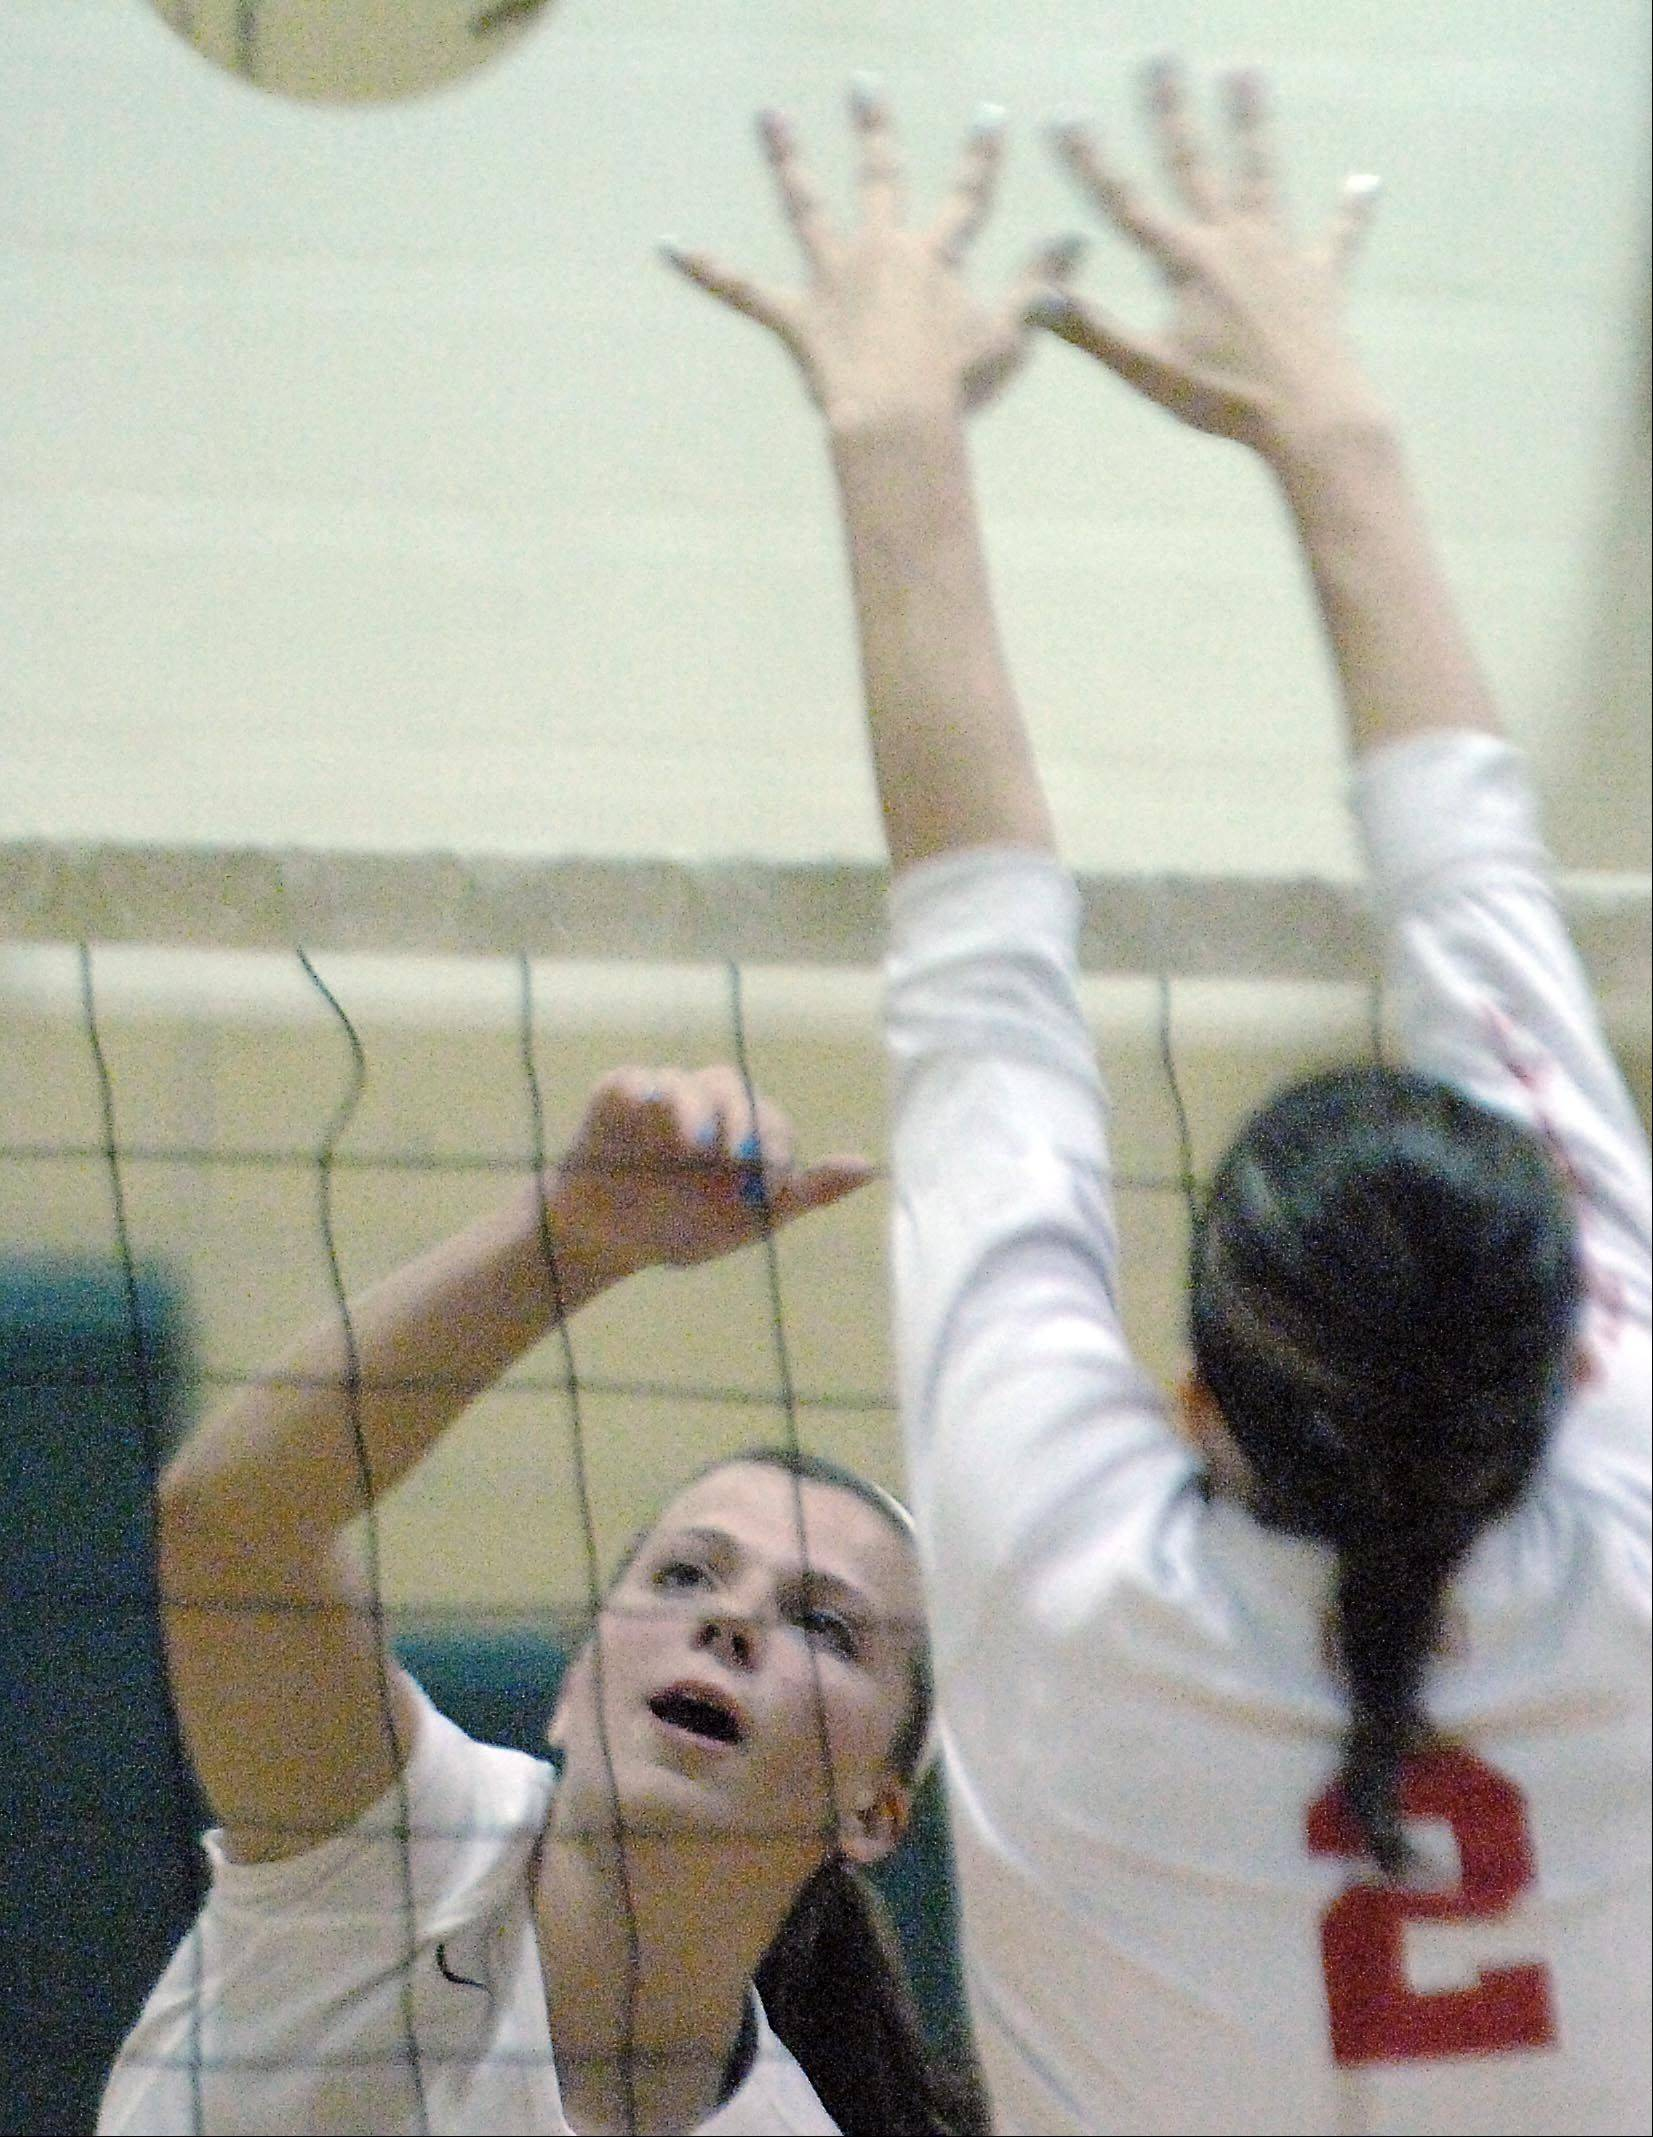 St. Edward's Katie Swanson hits past Aurora Christian's Faith Montalbano Monday in Elgin.